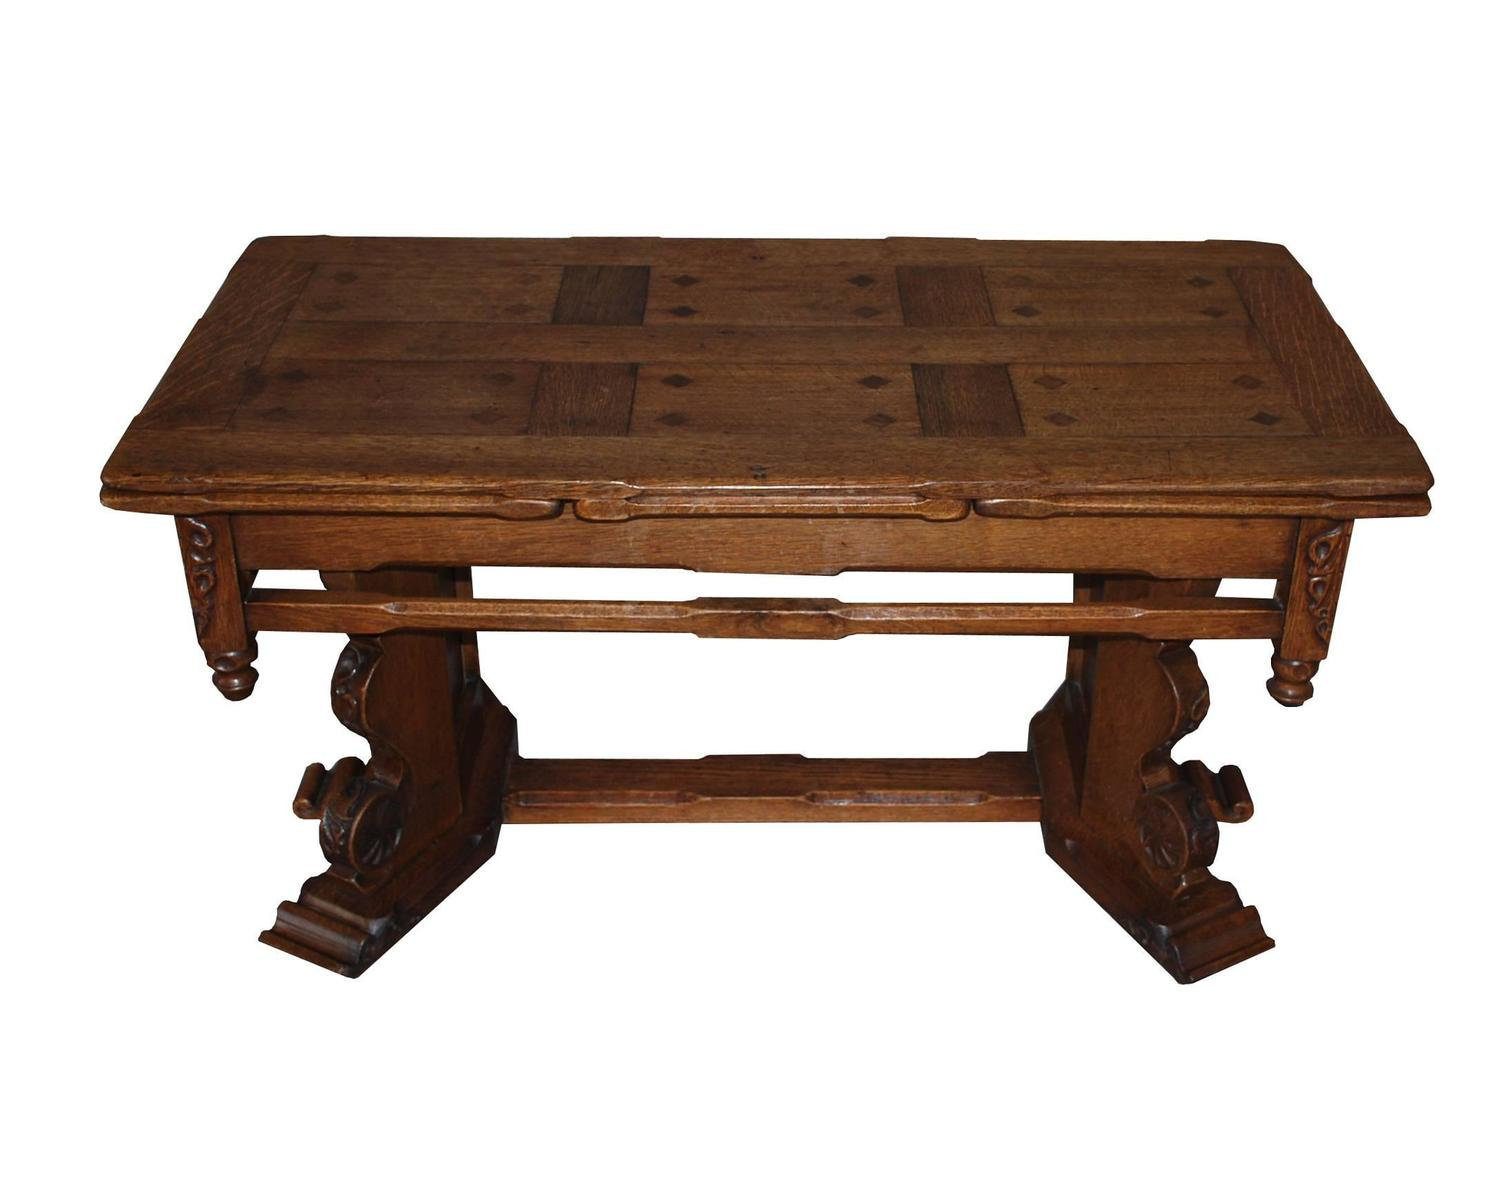 19th century dutch extendable oakwood coffee table for. Black Bedroom Furniture Sets. Home Design Ideas